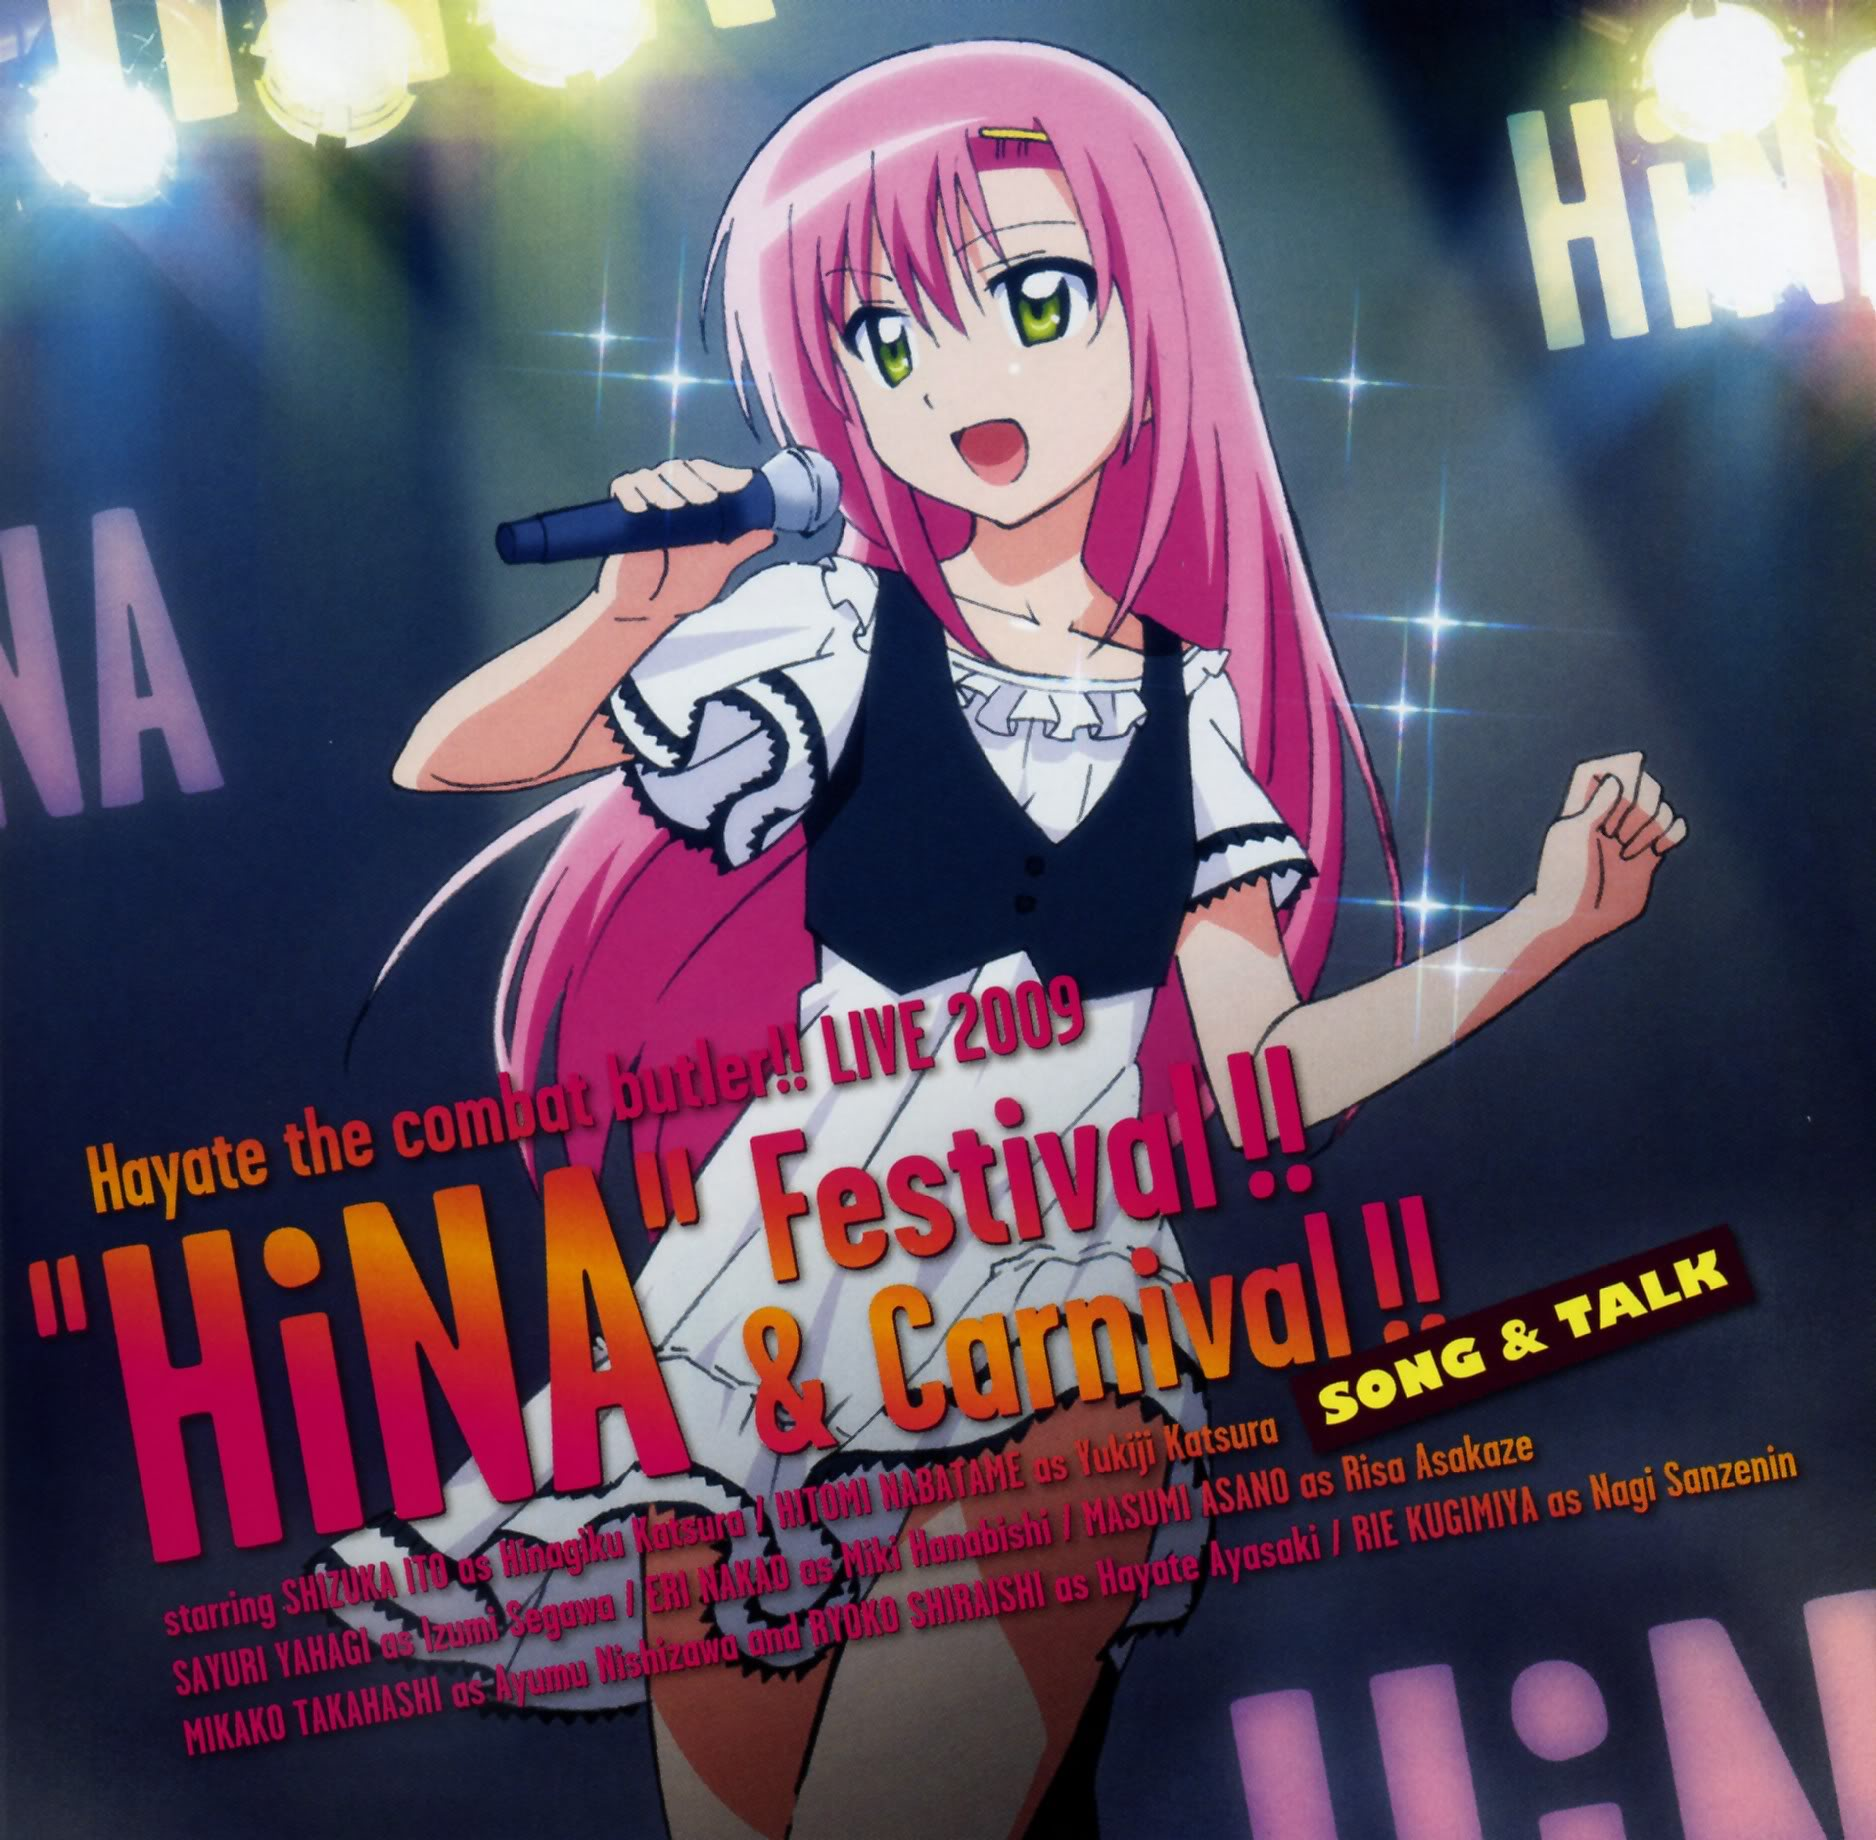 Songs of animes images songs of animes hd wallpaper and background photos